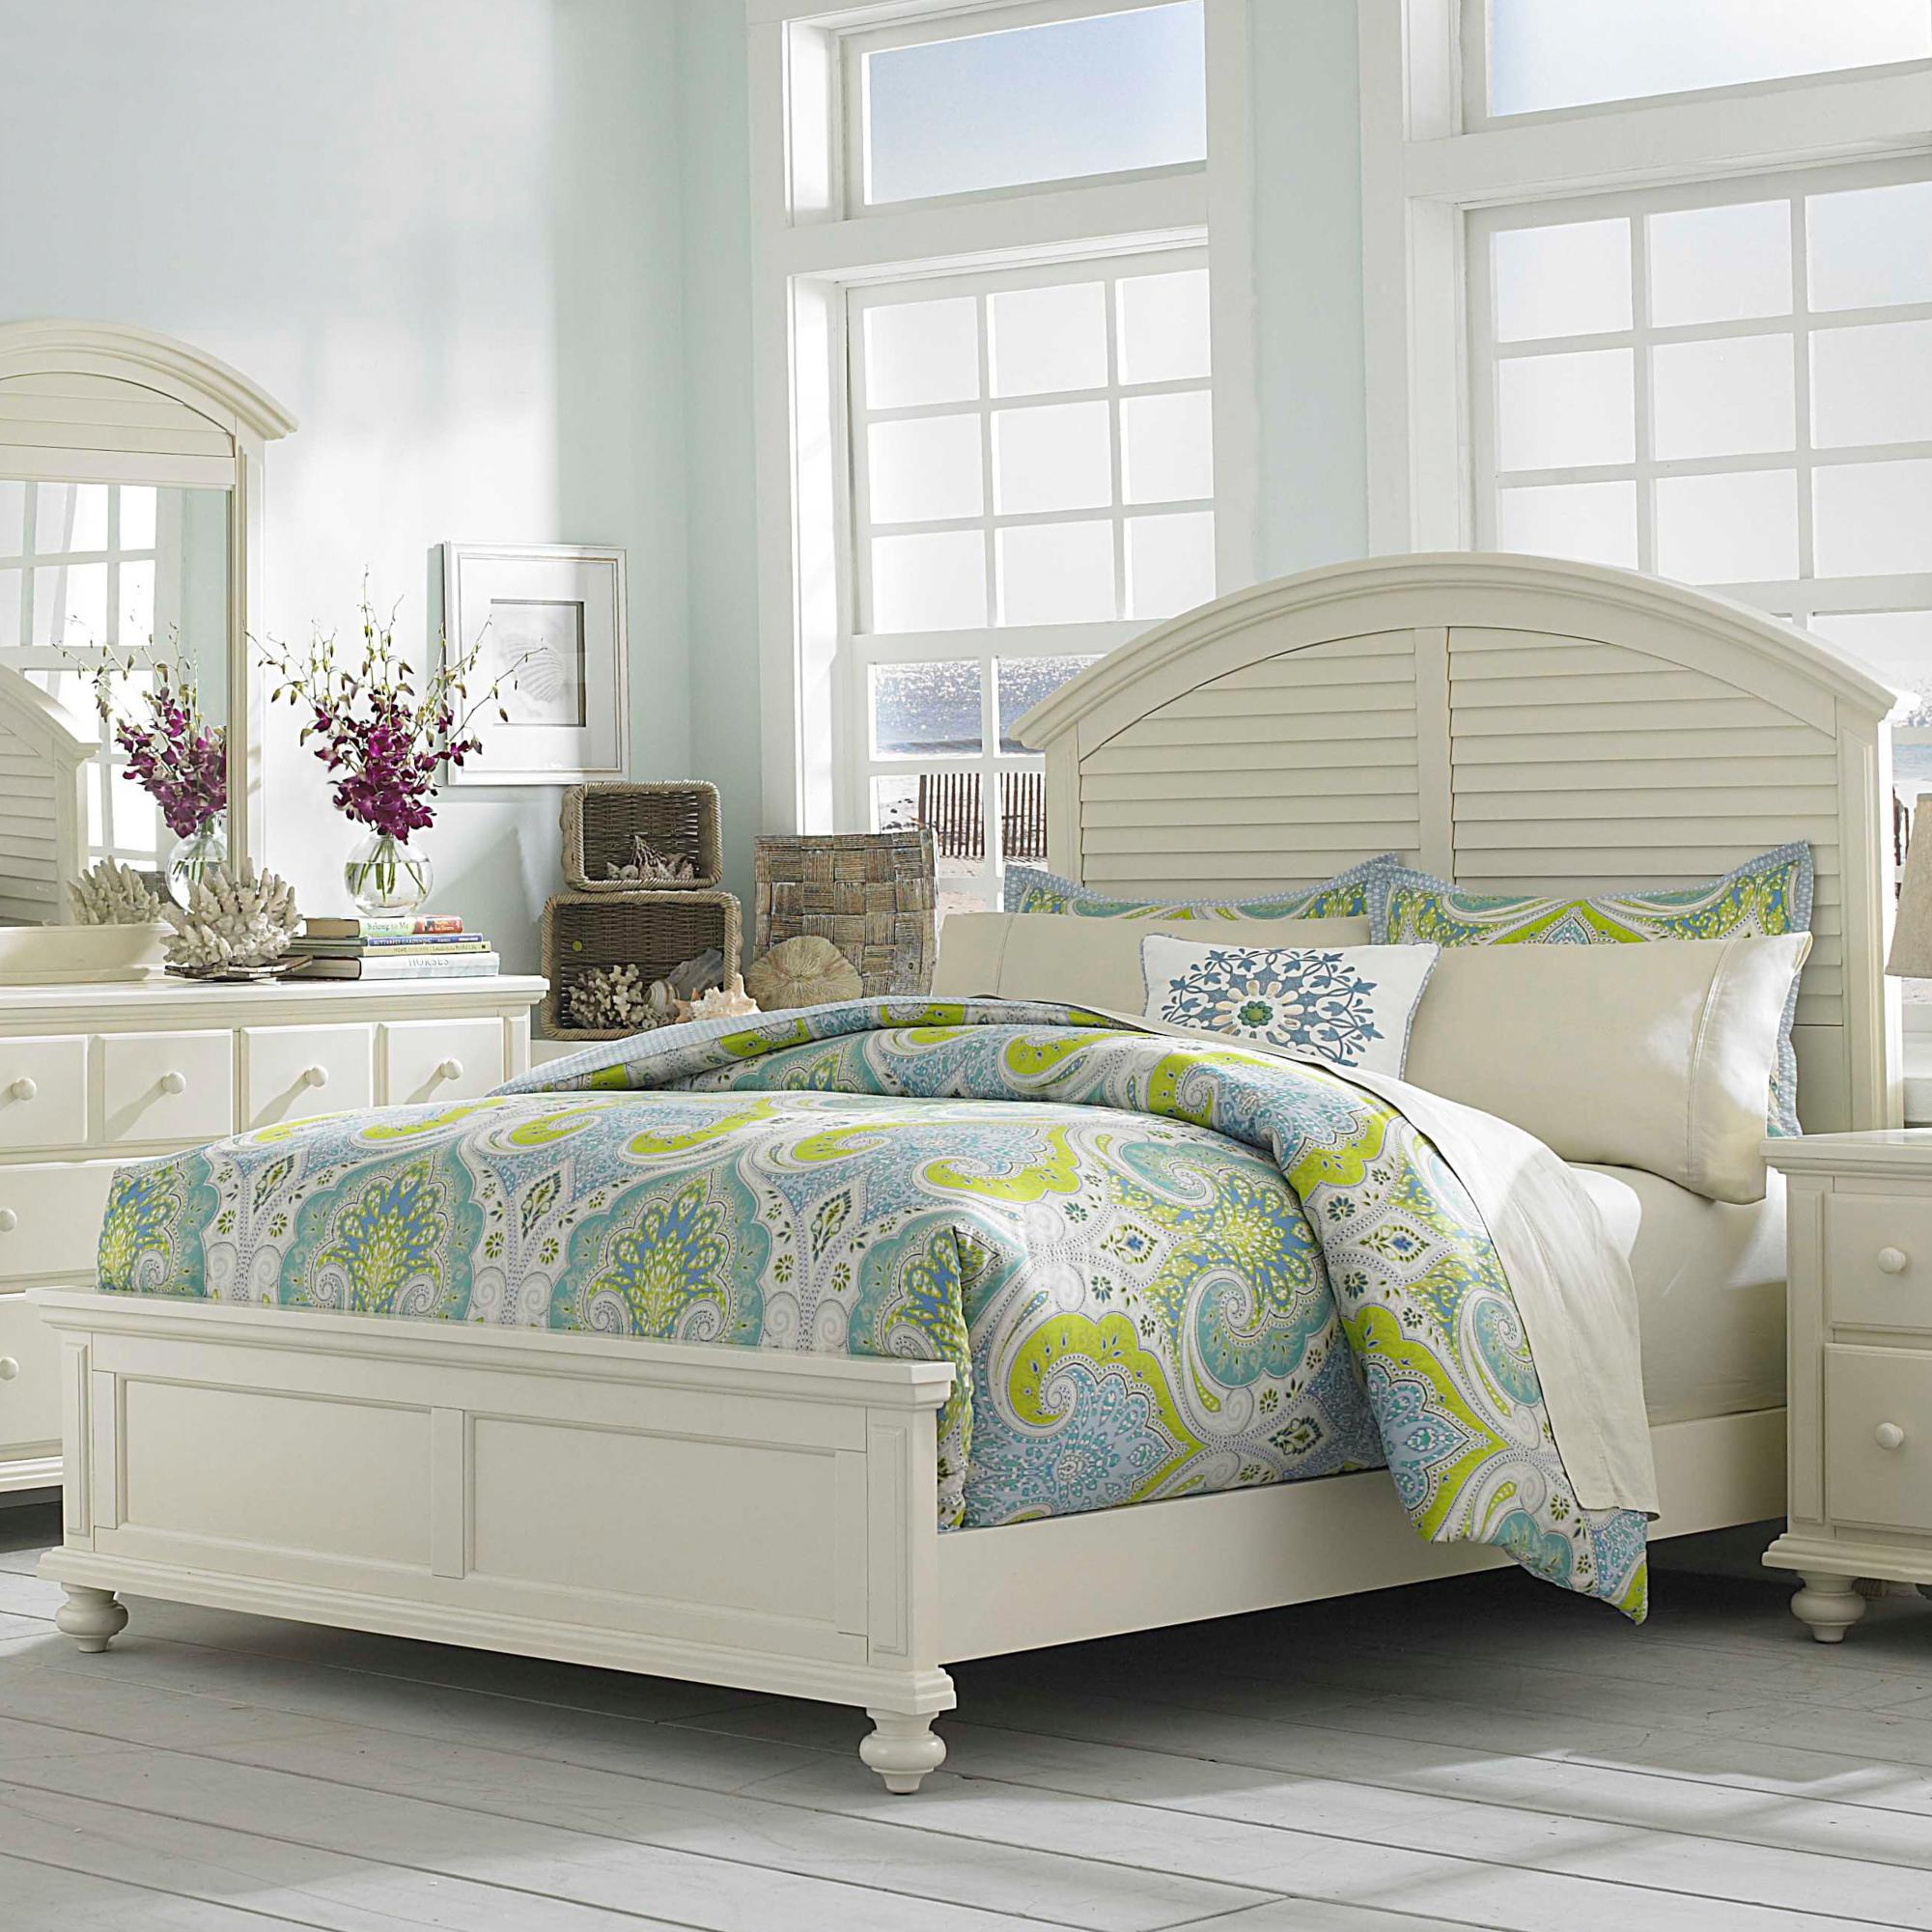 Broyhill Furniture Seabrooke King Panel Bed - Item Number: 4471-254+255+450